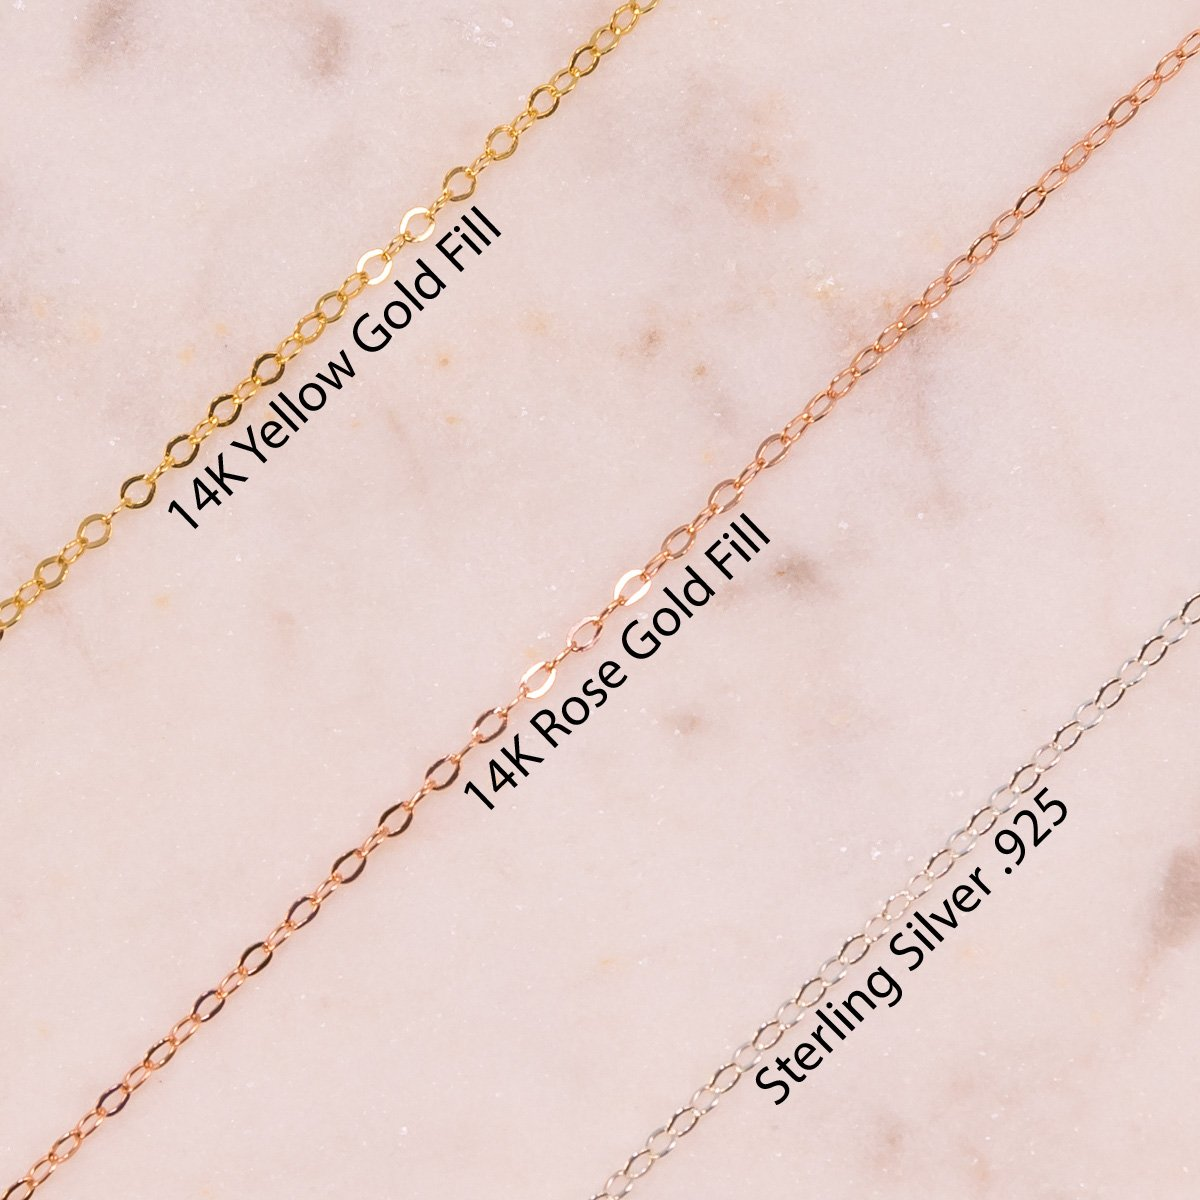 14k Gold Fill Chain, 14k Rose Gold Fill Chain, Sterling Silver Chain Comparison| Liz.Beth Jewelry Co.